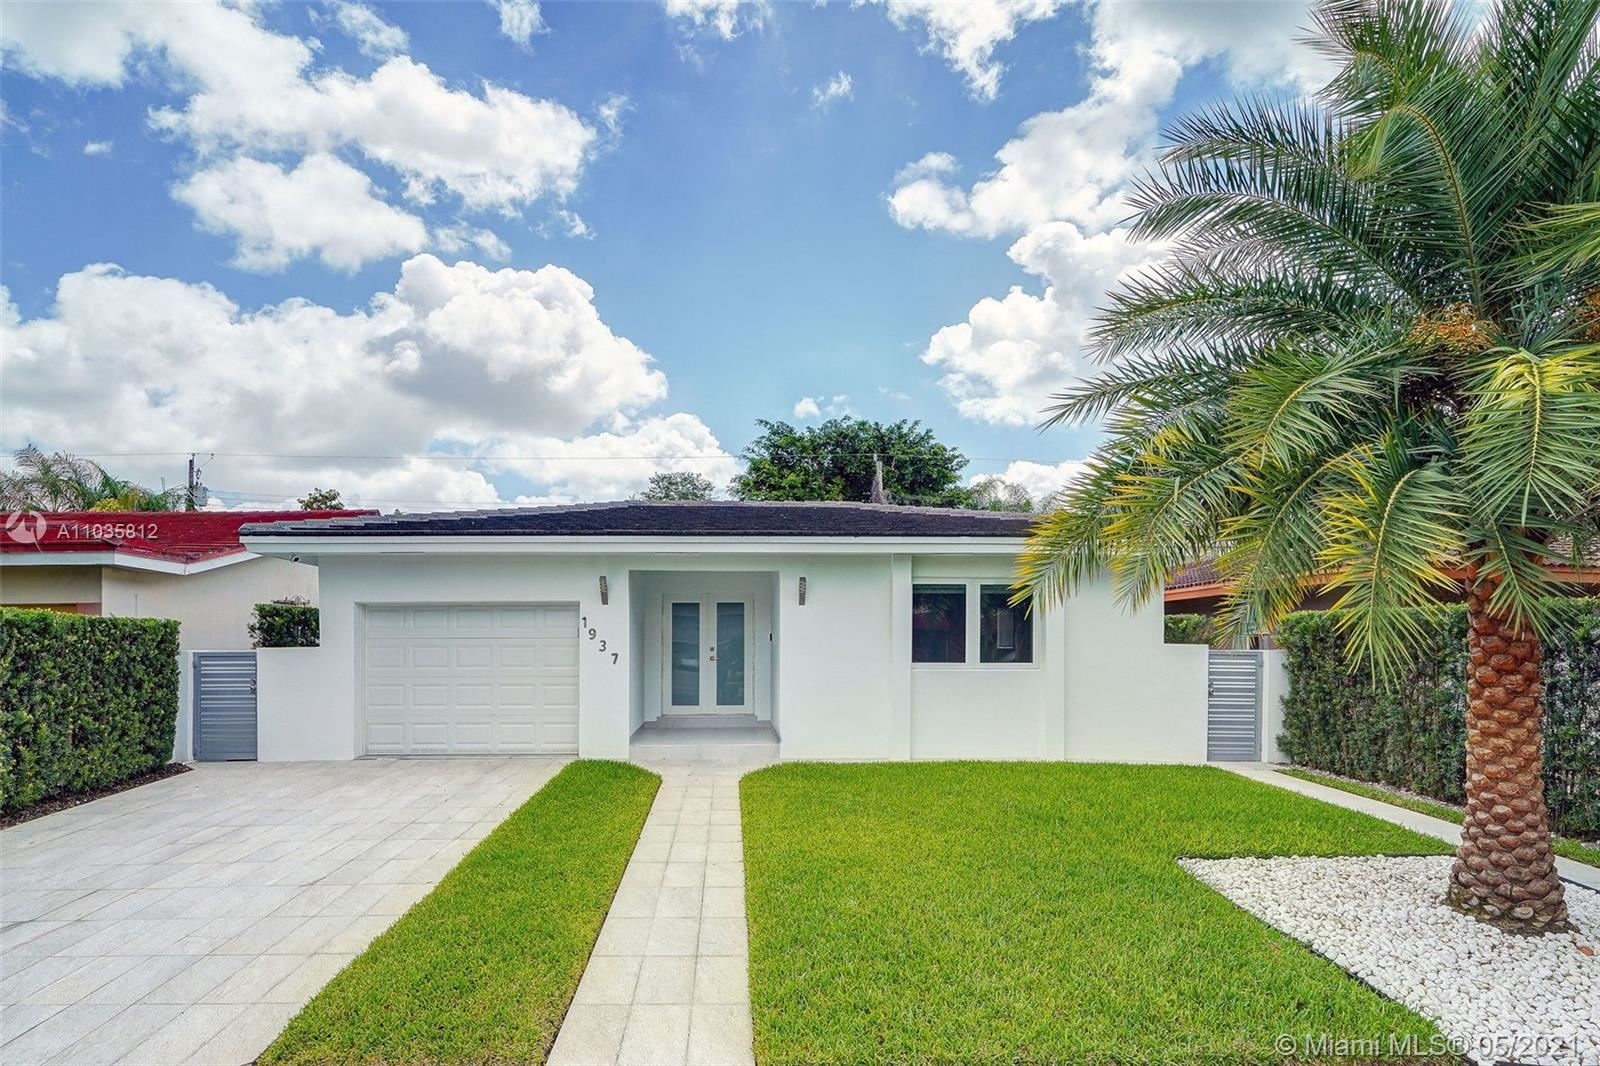 1937 SW 57th Ave, Coral Gables, FL 33155 - #: A11035812